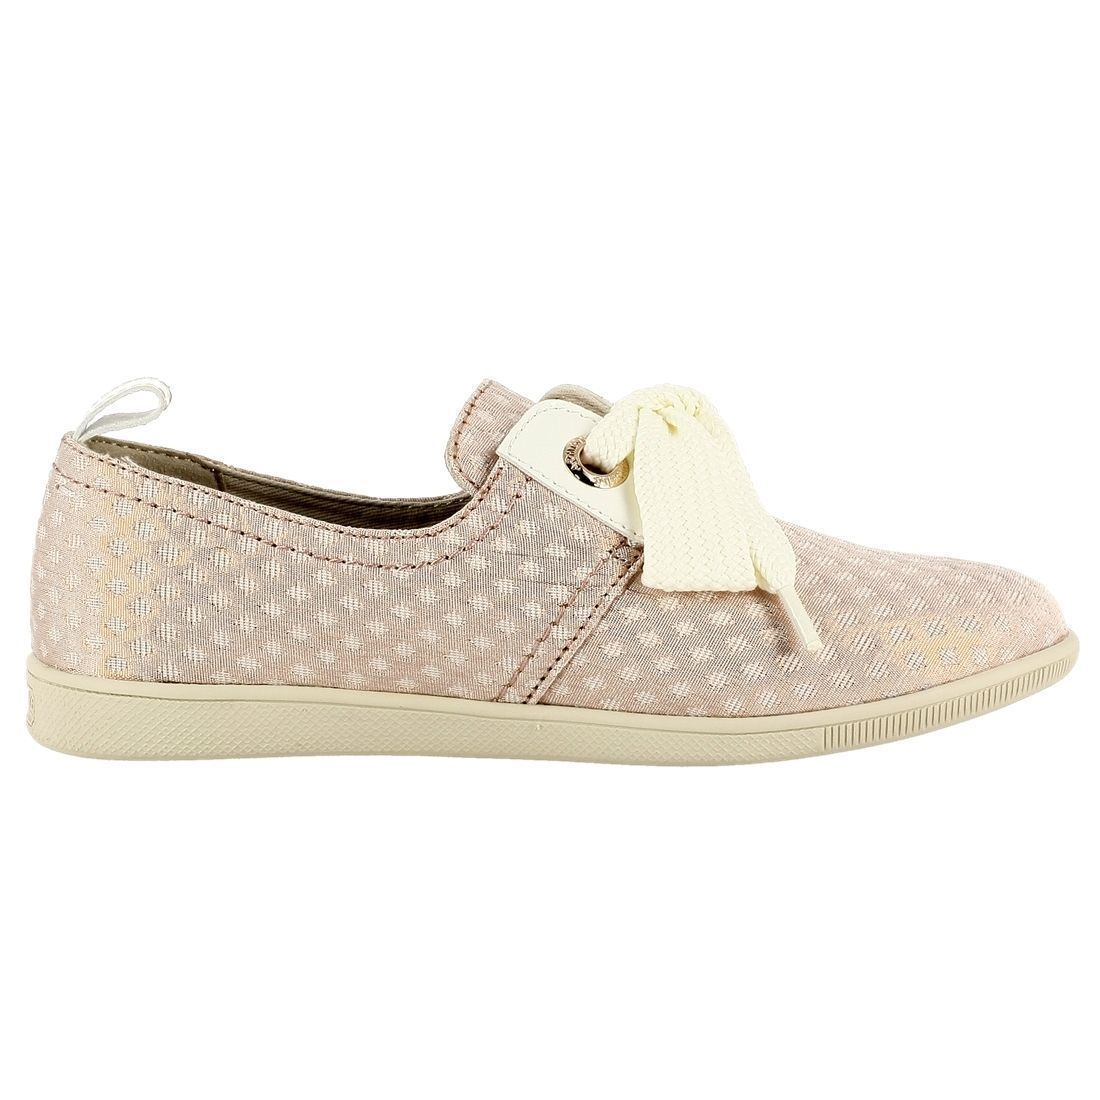 BROOKLYN MID WEDGE STONE 1 W:ROSE/TOILE/TOILE/CAOUTCHOUC/Rose